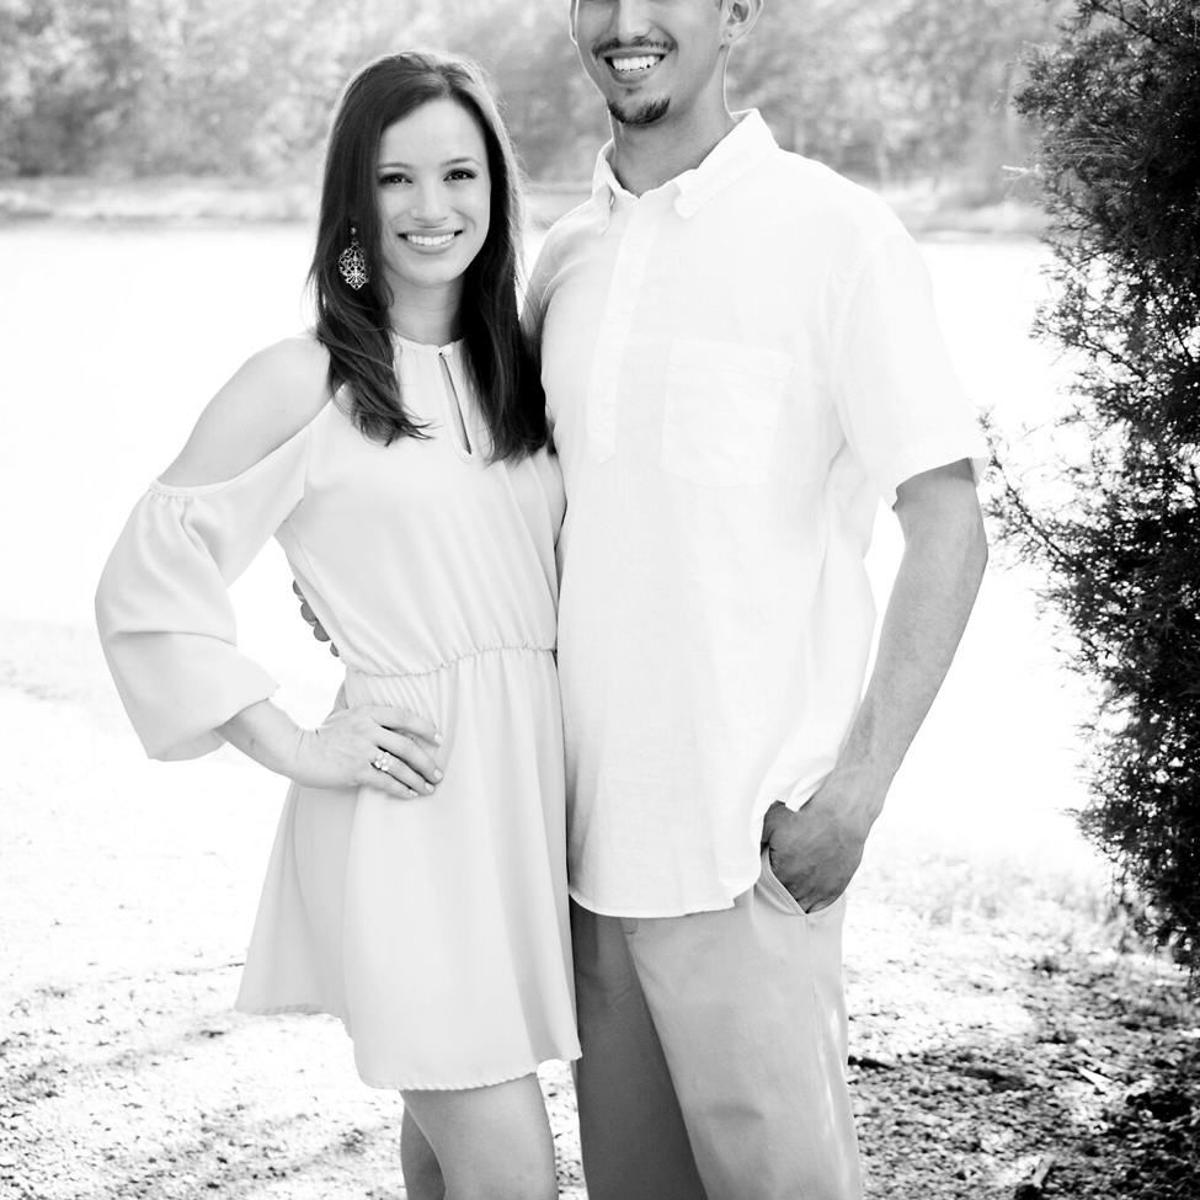 Tate-Upchurch Engagement | Engagements | theeagle com